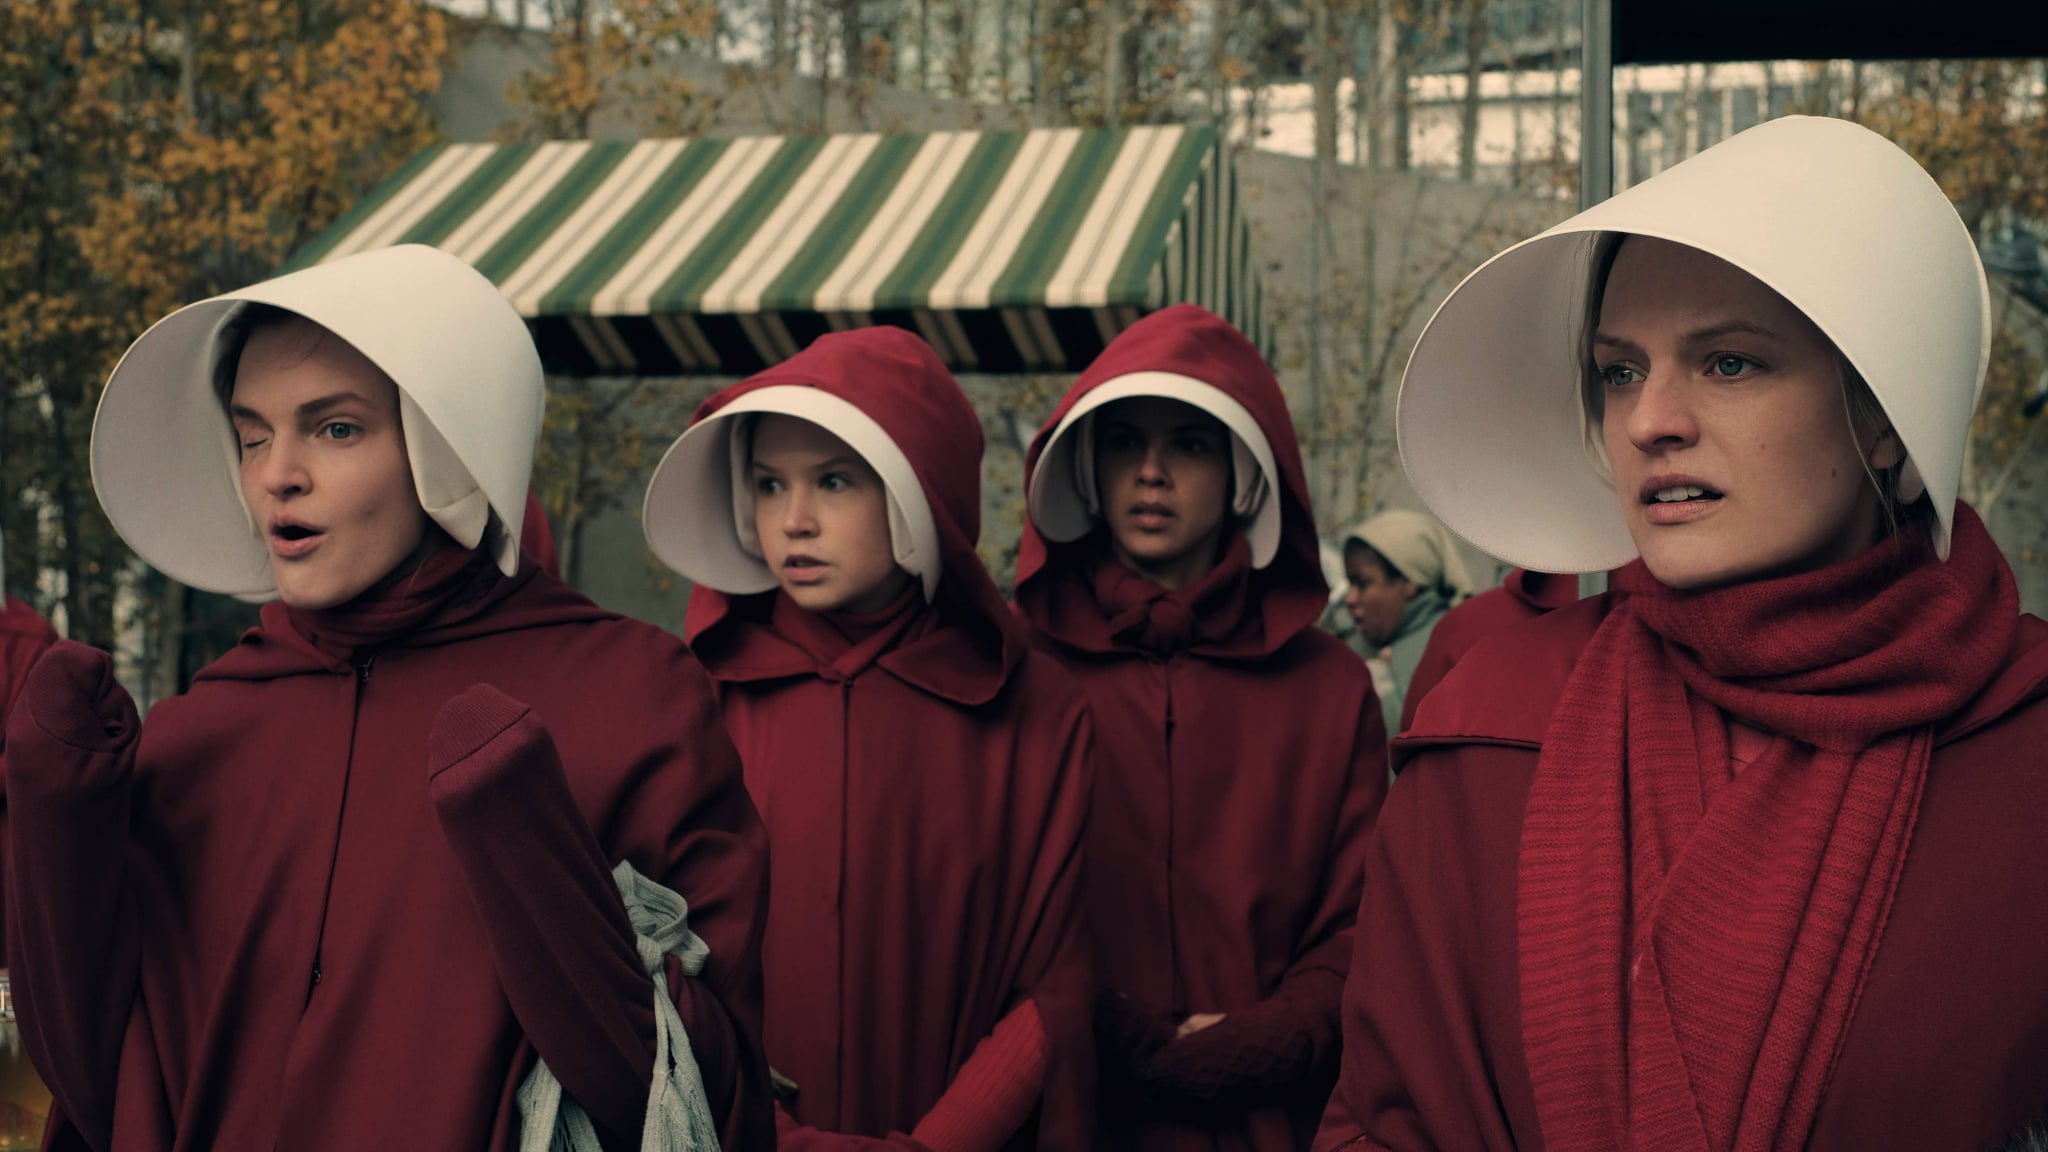 THE HANDMAID'S TALE, Madeline Brewer (left), Elisabeth Moss (right), 'Faithful', (Season 1, ep. 105, aired May 10, 2017). photo: George Kraychyk / Hulu / Courtesy: Everett Collection